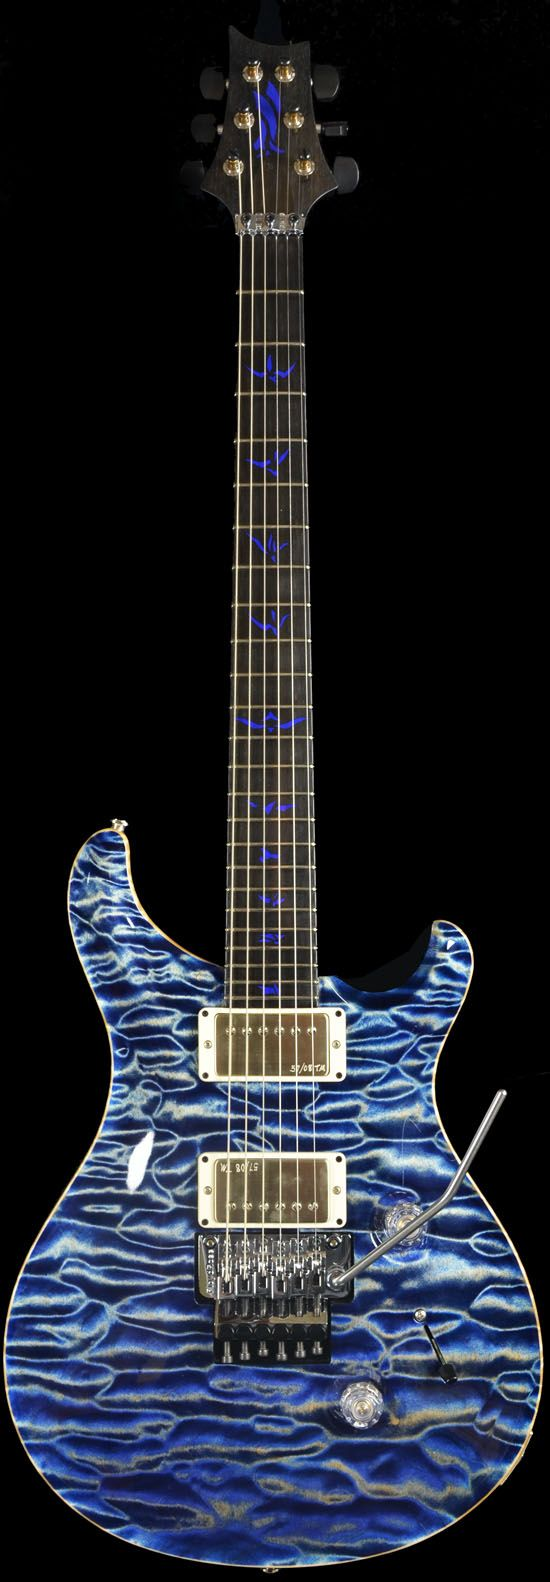 Wild West Guitars : PRS Private Stock #4058 Custom 24 w/ Floyd Rose- Faded Indigo. I have to have this guitar.